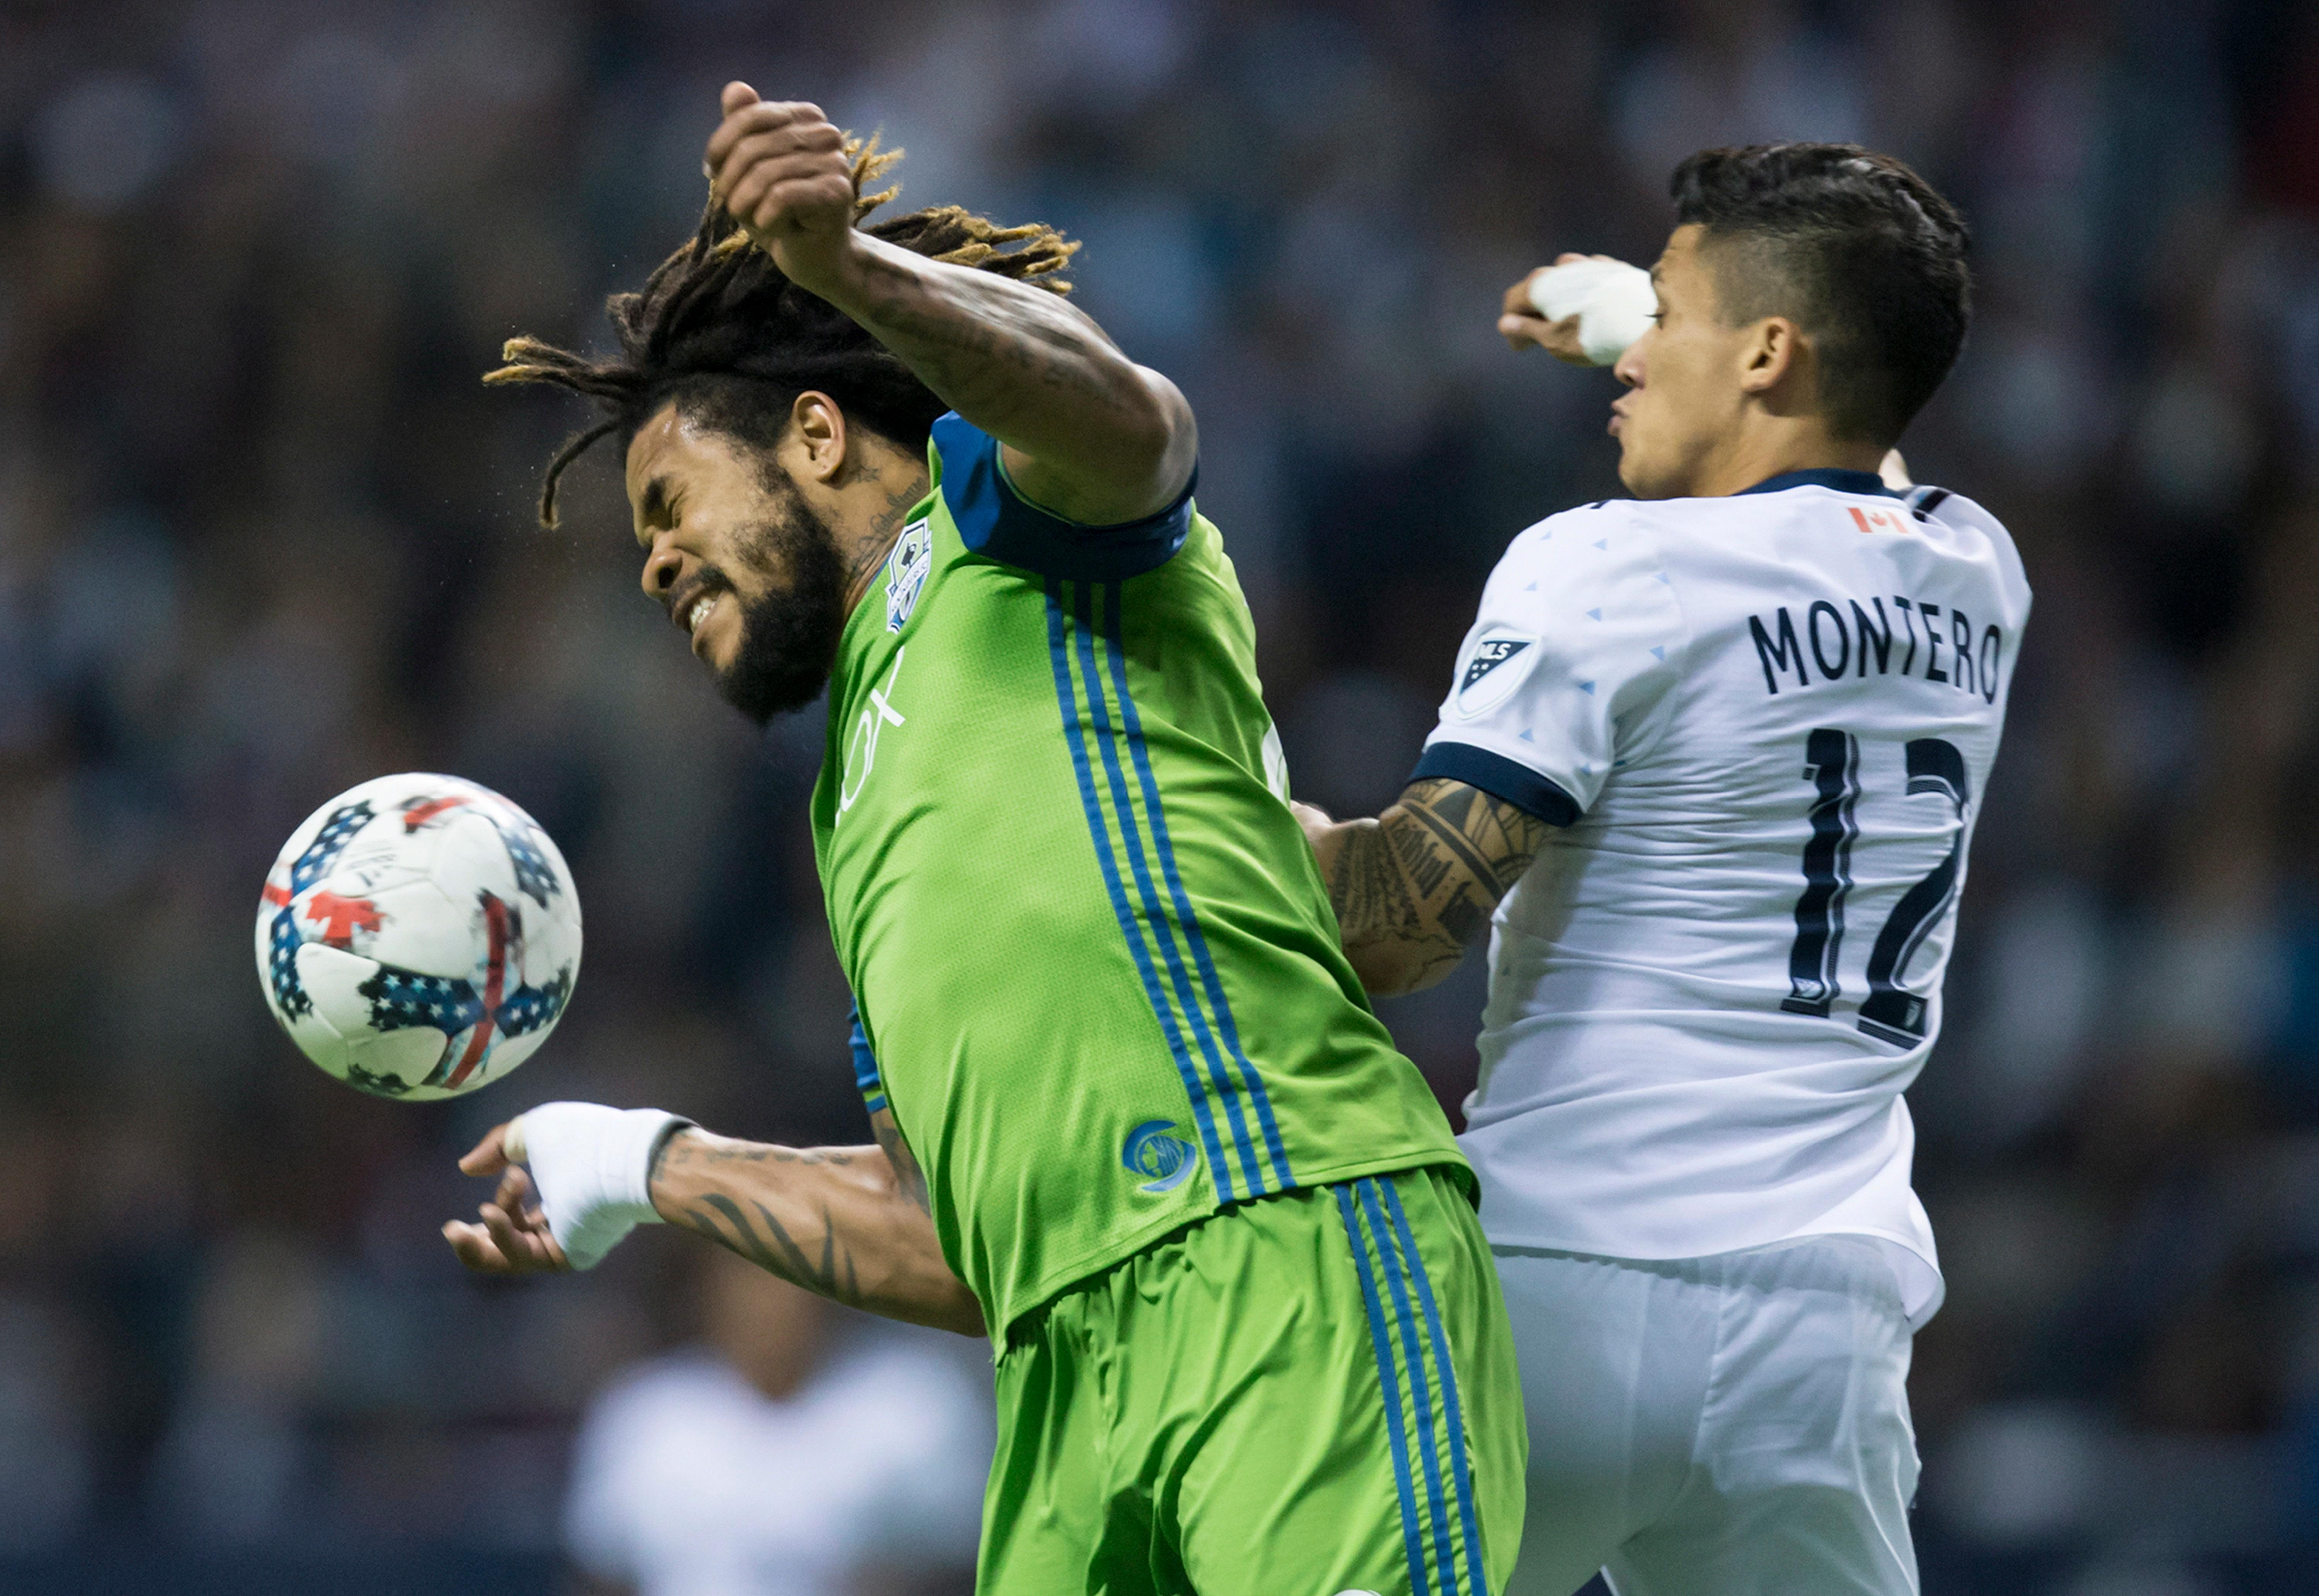 Seattle Sounders' Roman Torres, left, prevents a pass from getting to Vancouver Whitecaps' Fredy Montero during the second half of an MLS playoff soccer match in Vancouver, British Columbia, Sunday, Oct. 29, 2017. (Darryl Dyck/The Canadian Press via AP)